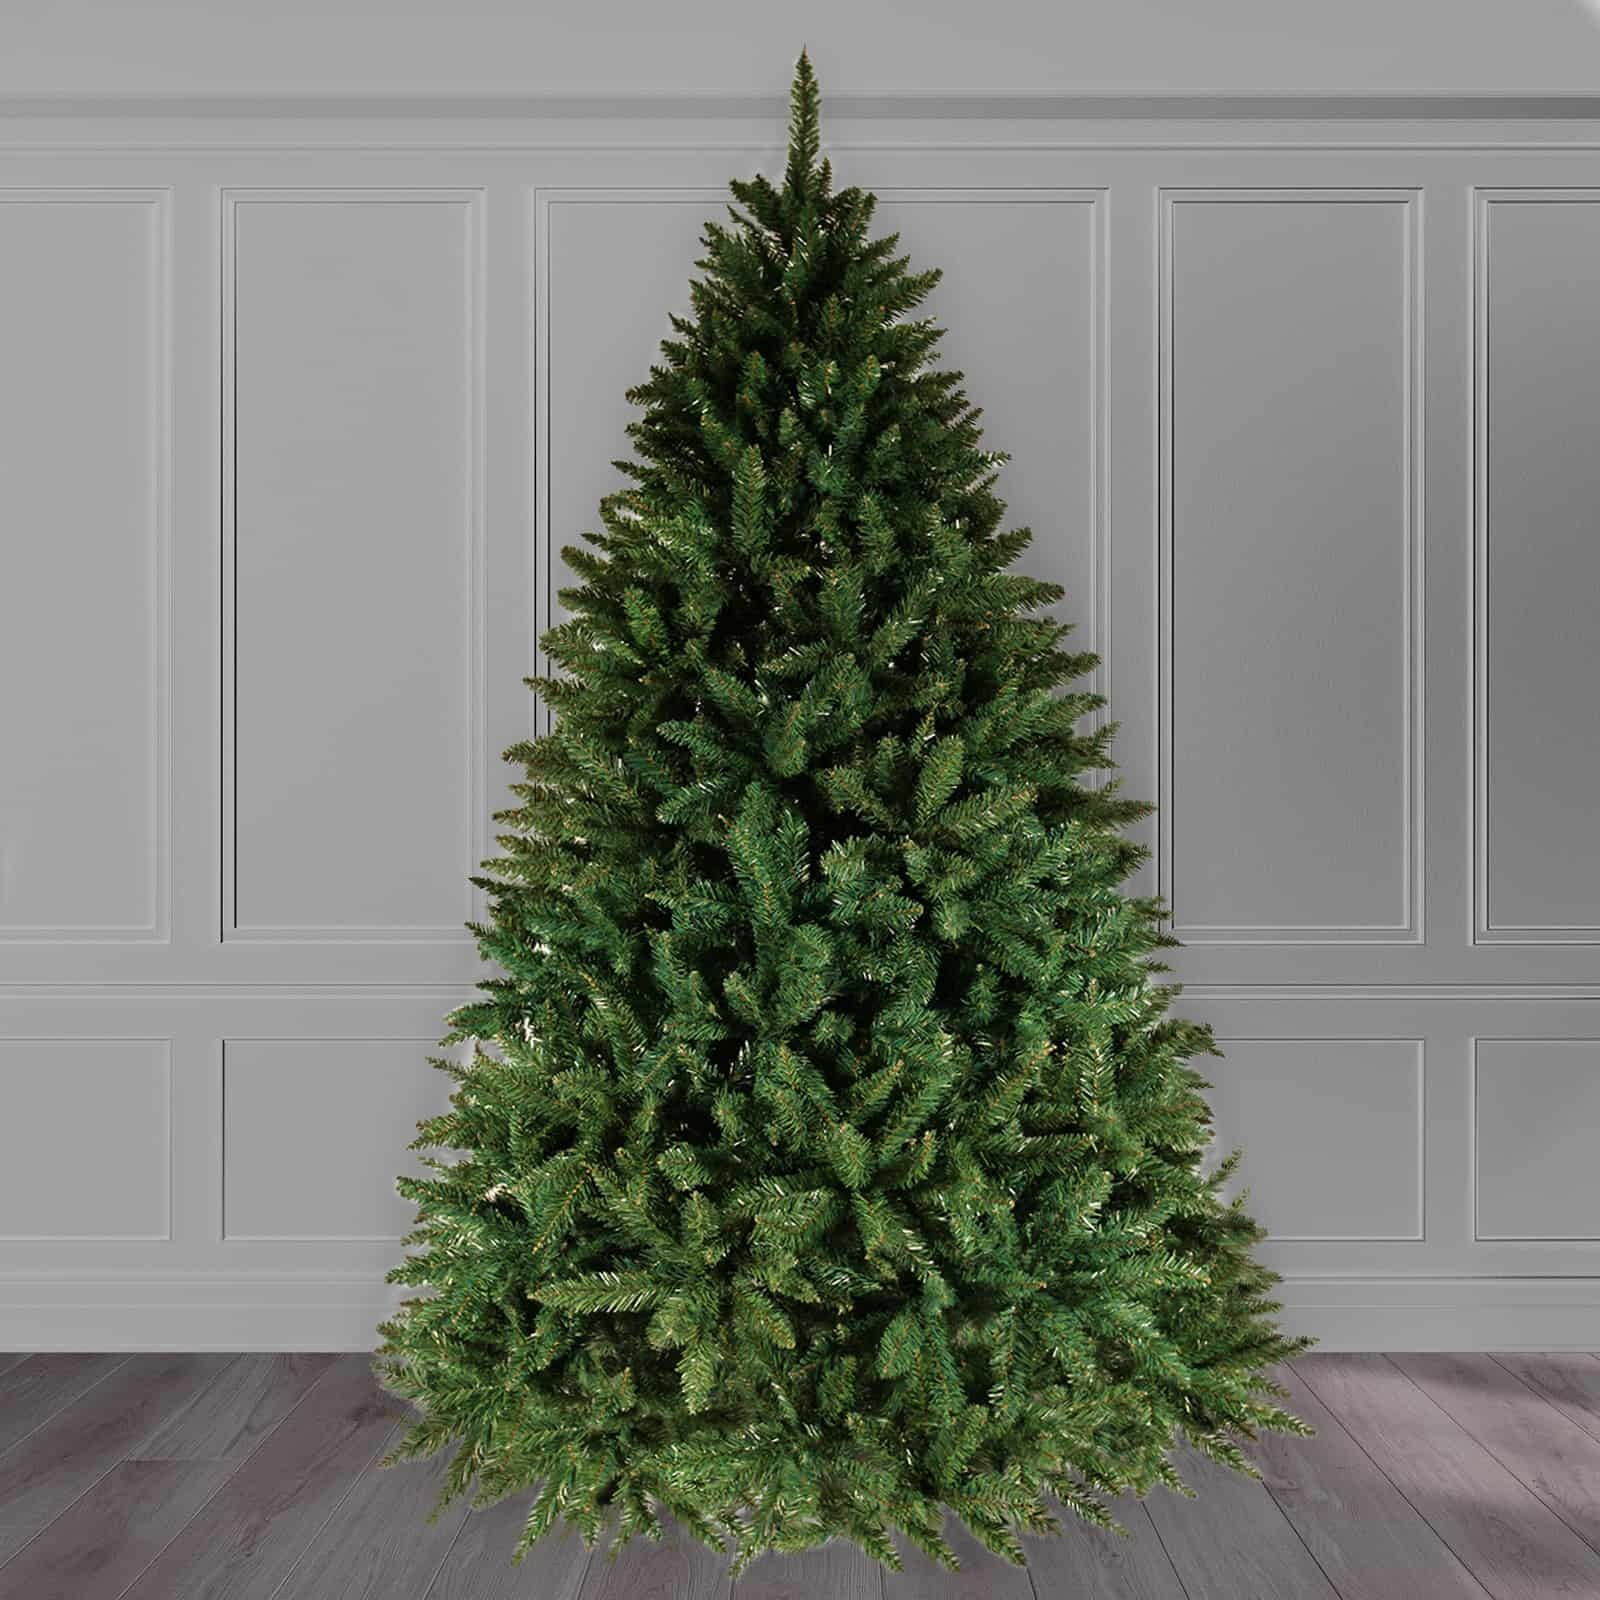 9ft Christmas Tree.9ft Christmas Tree Green Bavarian Premium Pine Hinged 3810 Tips